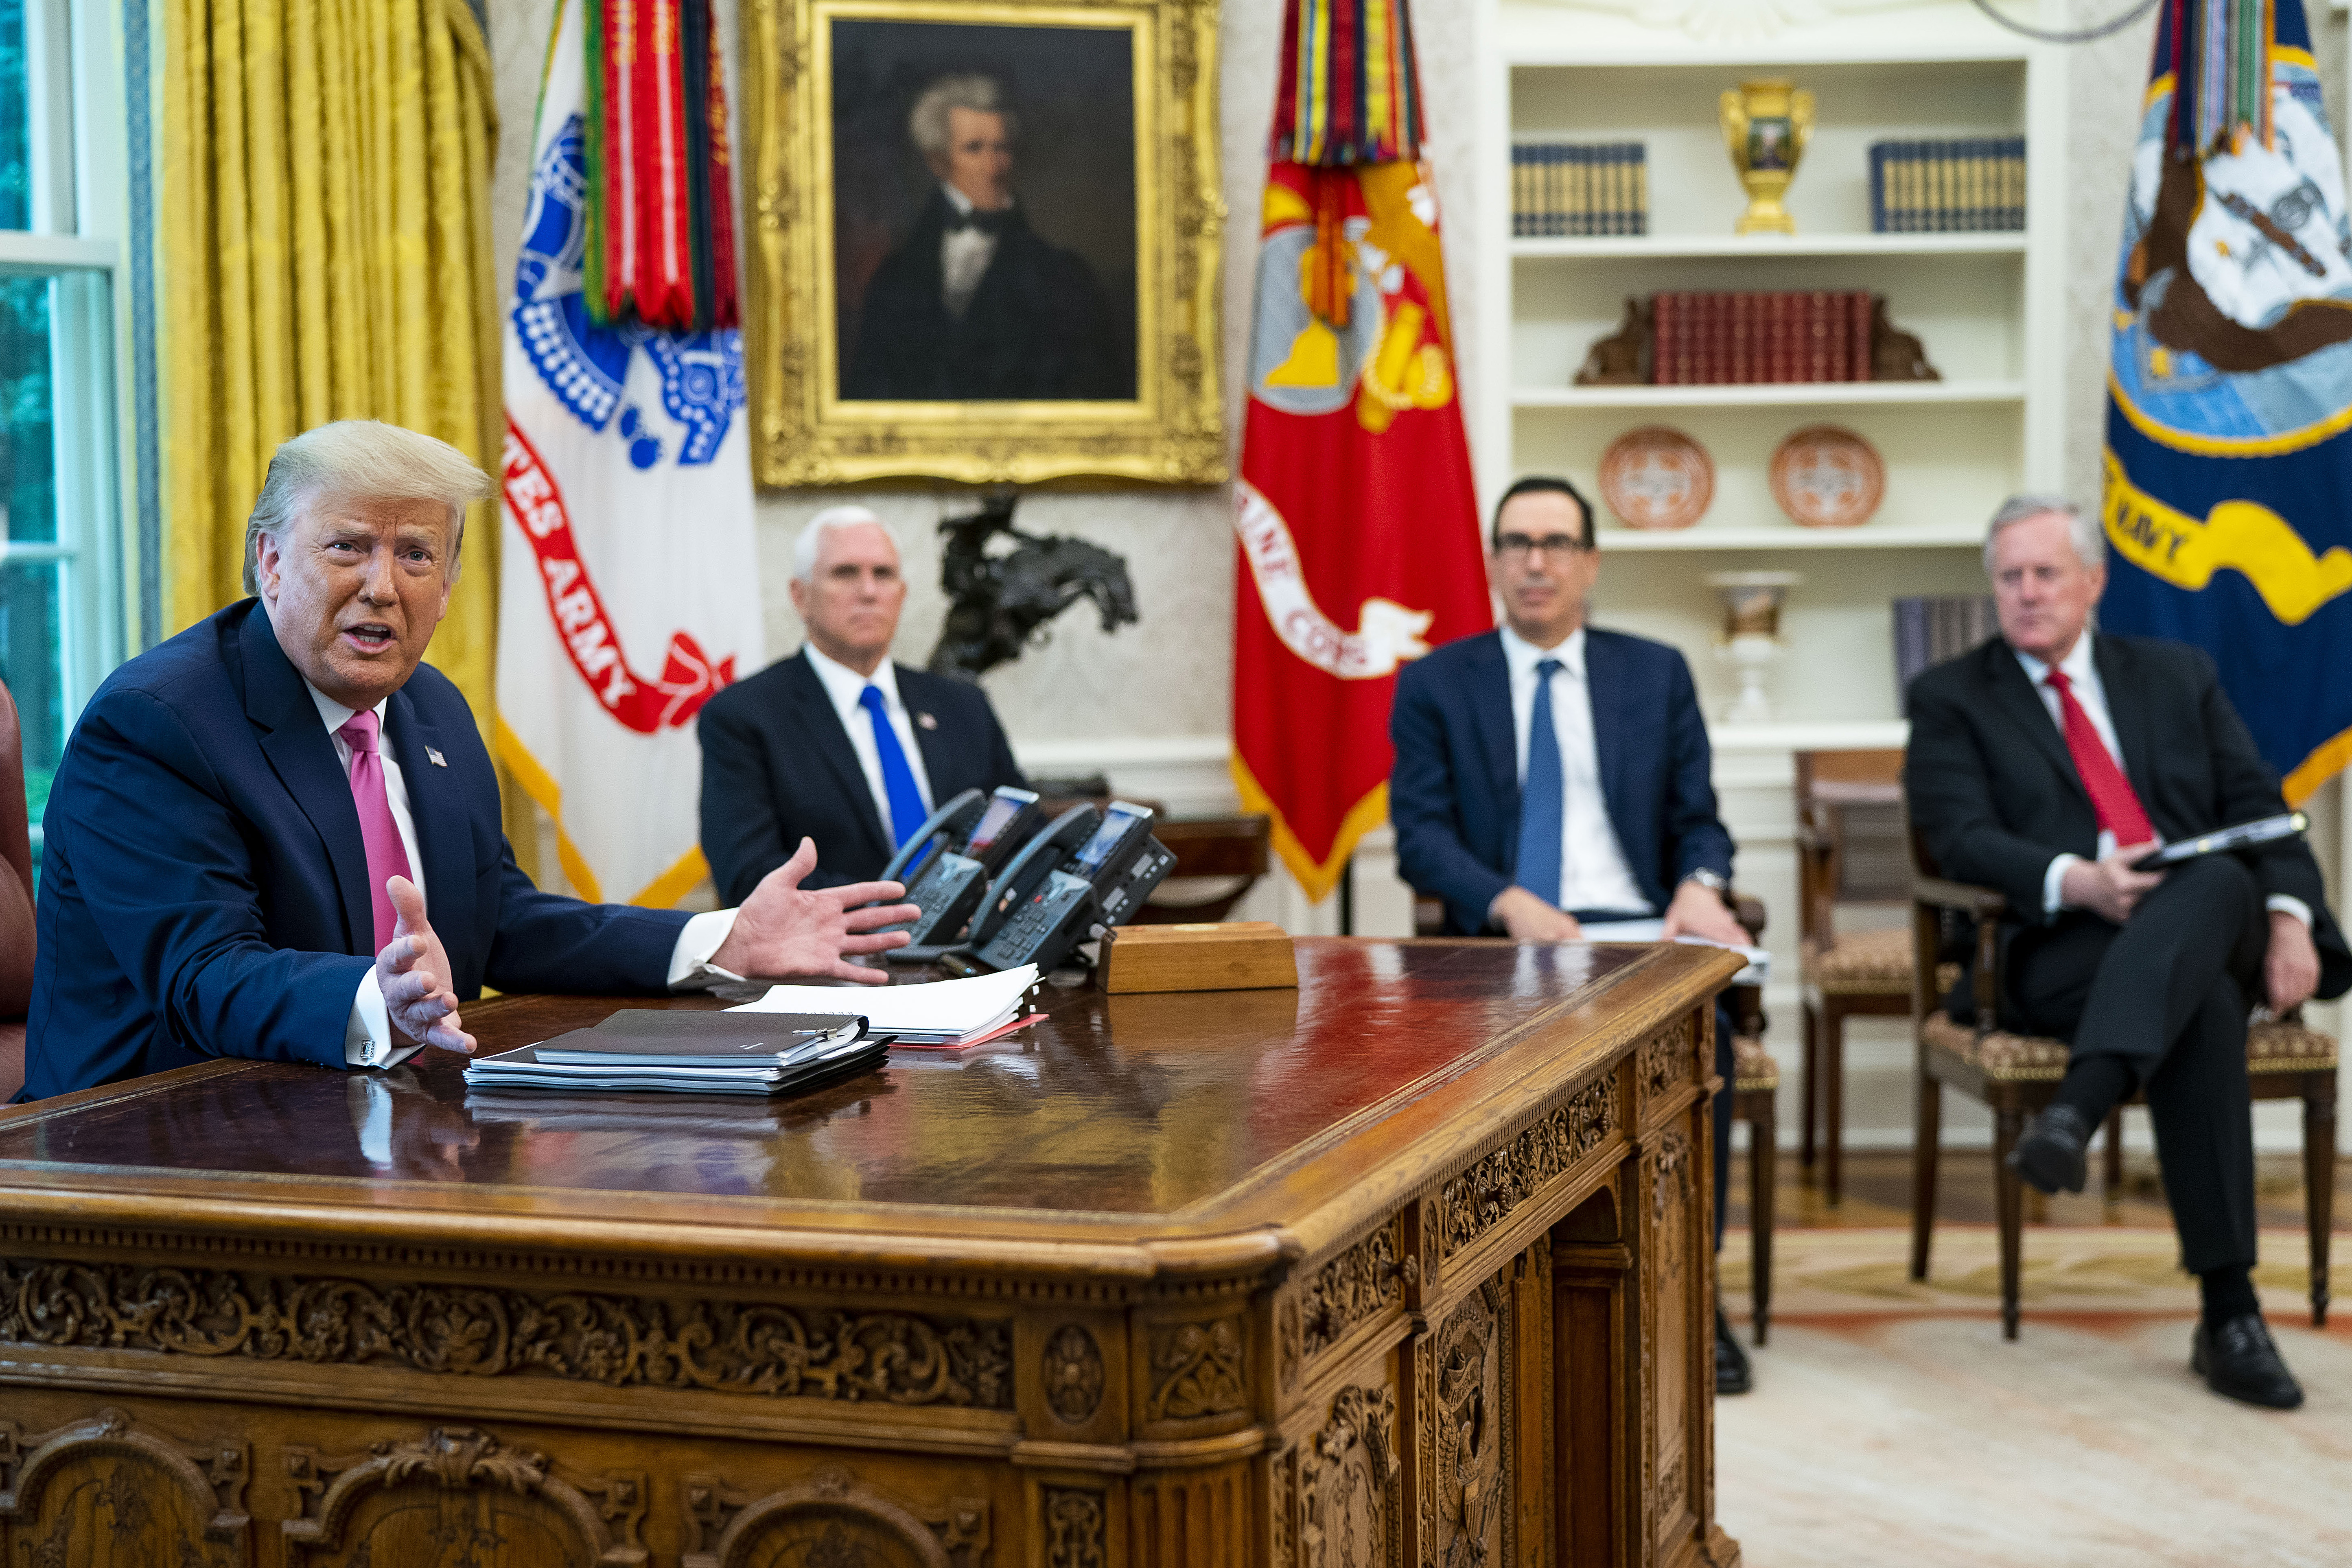 WASHINGTON, DC - JULY 20: U.S. President Donald Trump talks to reporters while hosting (2nd L-R) Vice President Mike Pence, Treasury Secretary Steven Mnuchin, White House Chief of Staff Mark Meadows and Republican congressional leaders in the Oval Office at the White House July 20, 2020 in Washington, DC. Trump and the congressional leaders talked about a proposed new round of financial stimulus to help the economy during the ongoing global coronavirus pandemic. (Photo by Doug Mills-Pool/Getty Images)